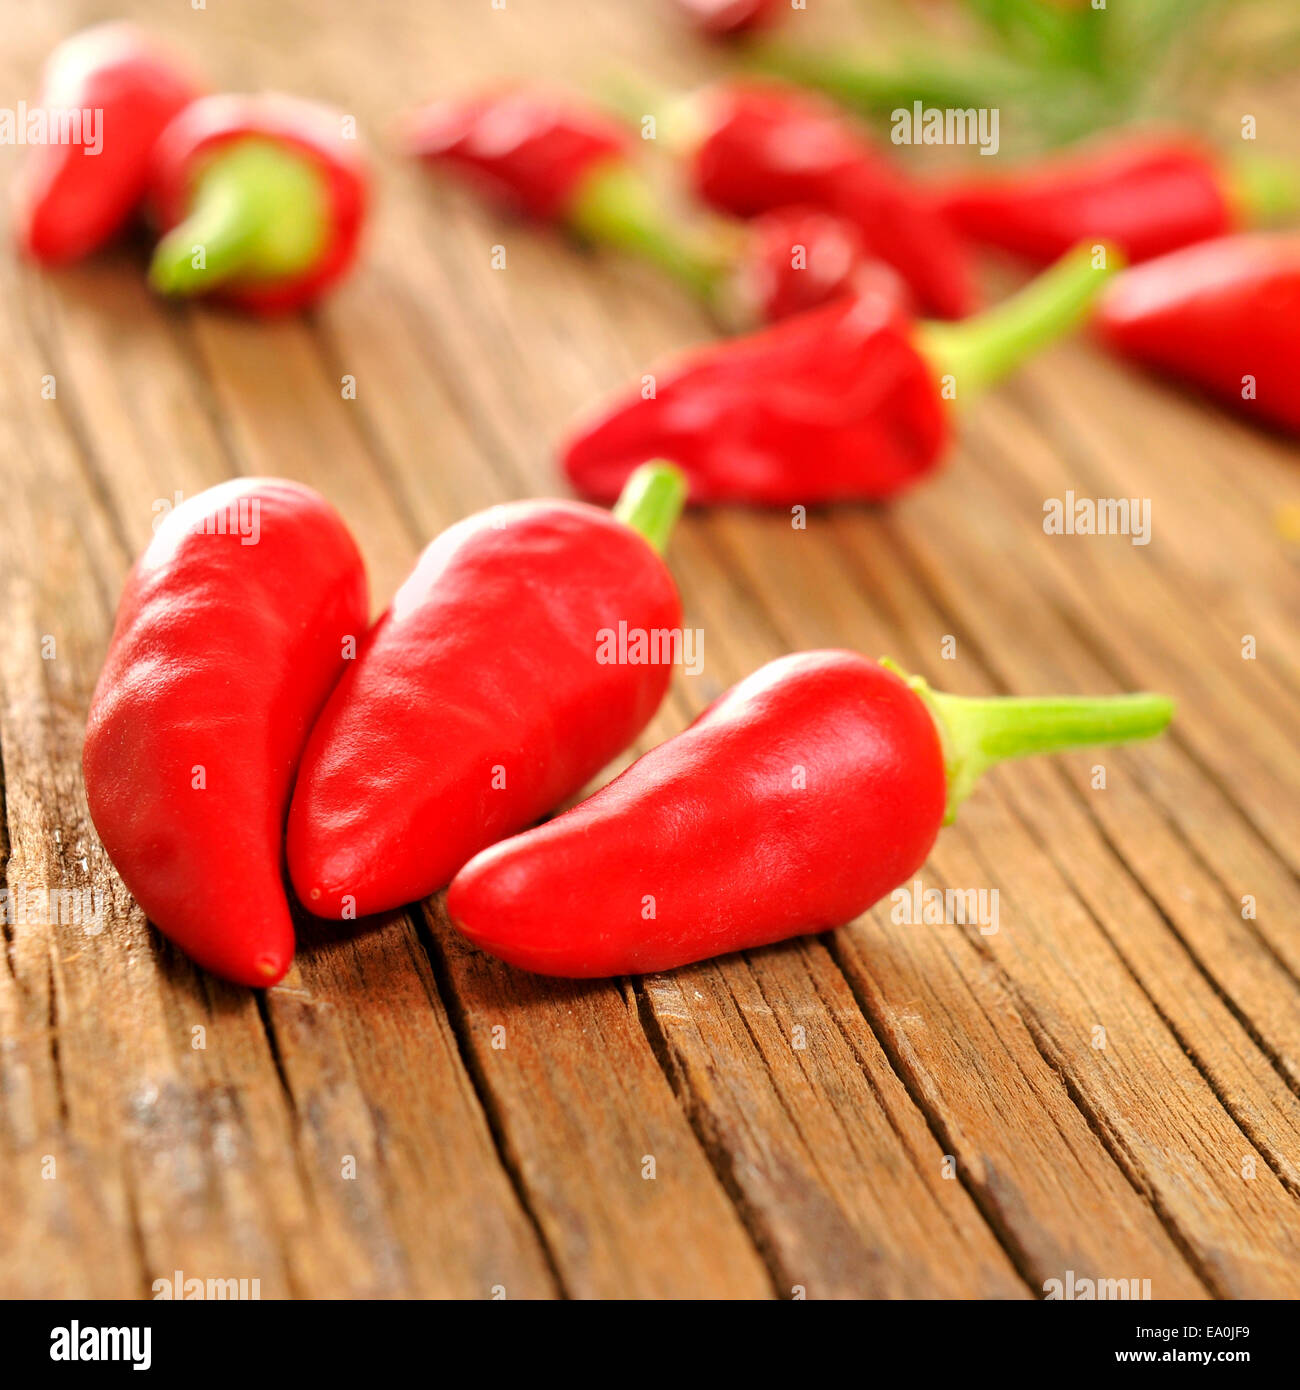 some small red peppers on a rustic wooden table - Stock Image